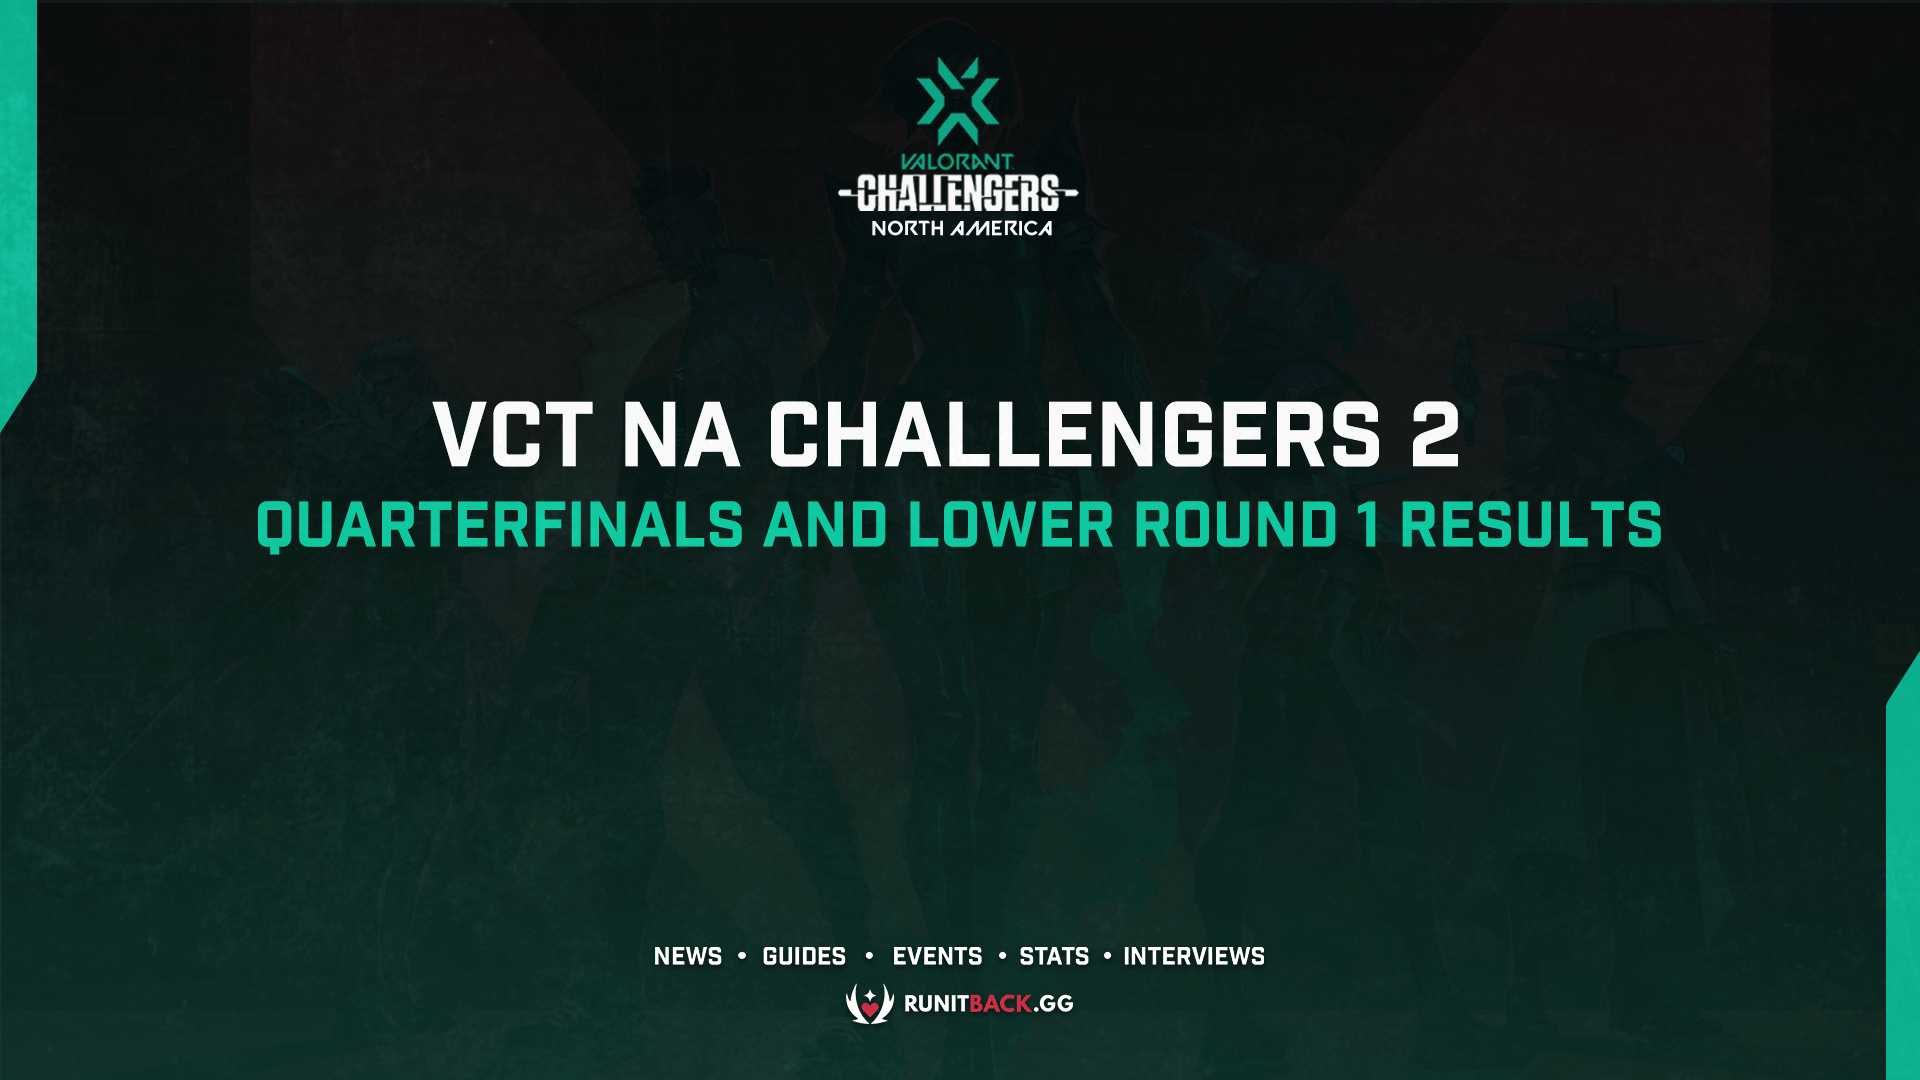 VCT NA Challengers 2 Main Event: Upper Quarterfinals and Lower Round 1 Results